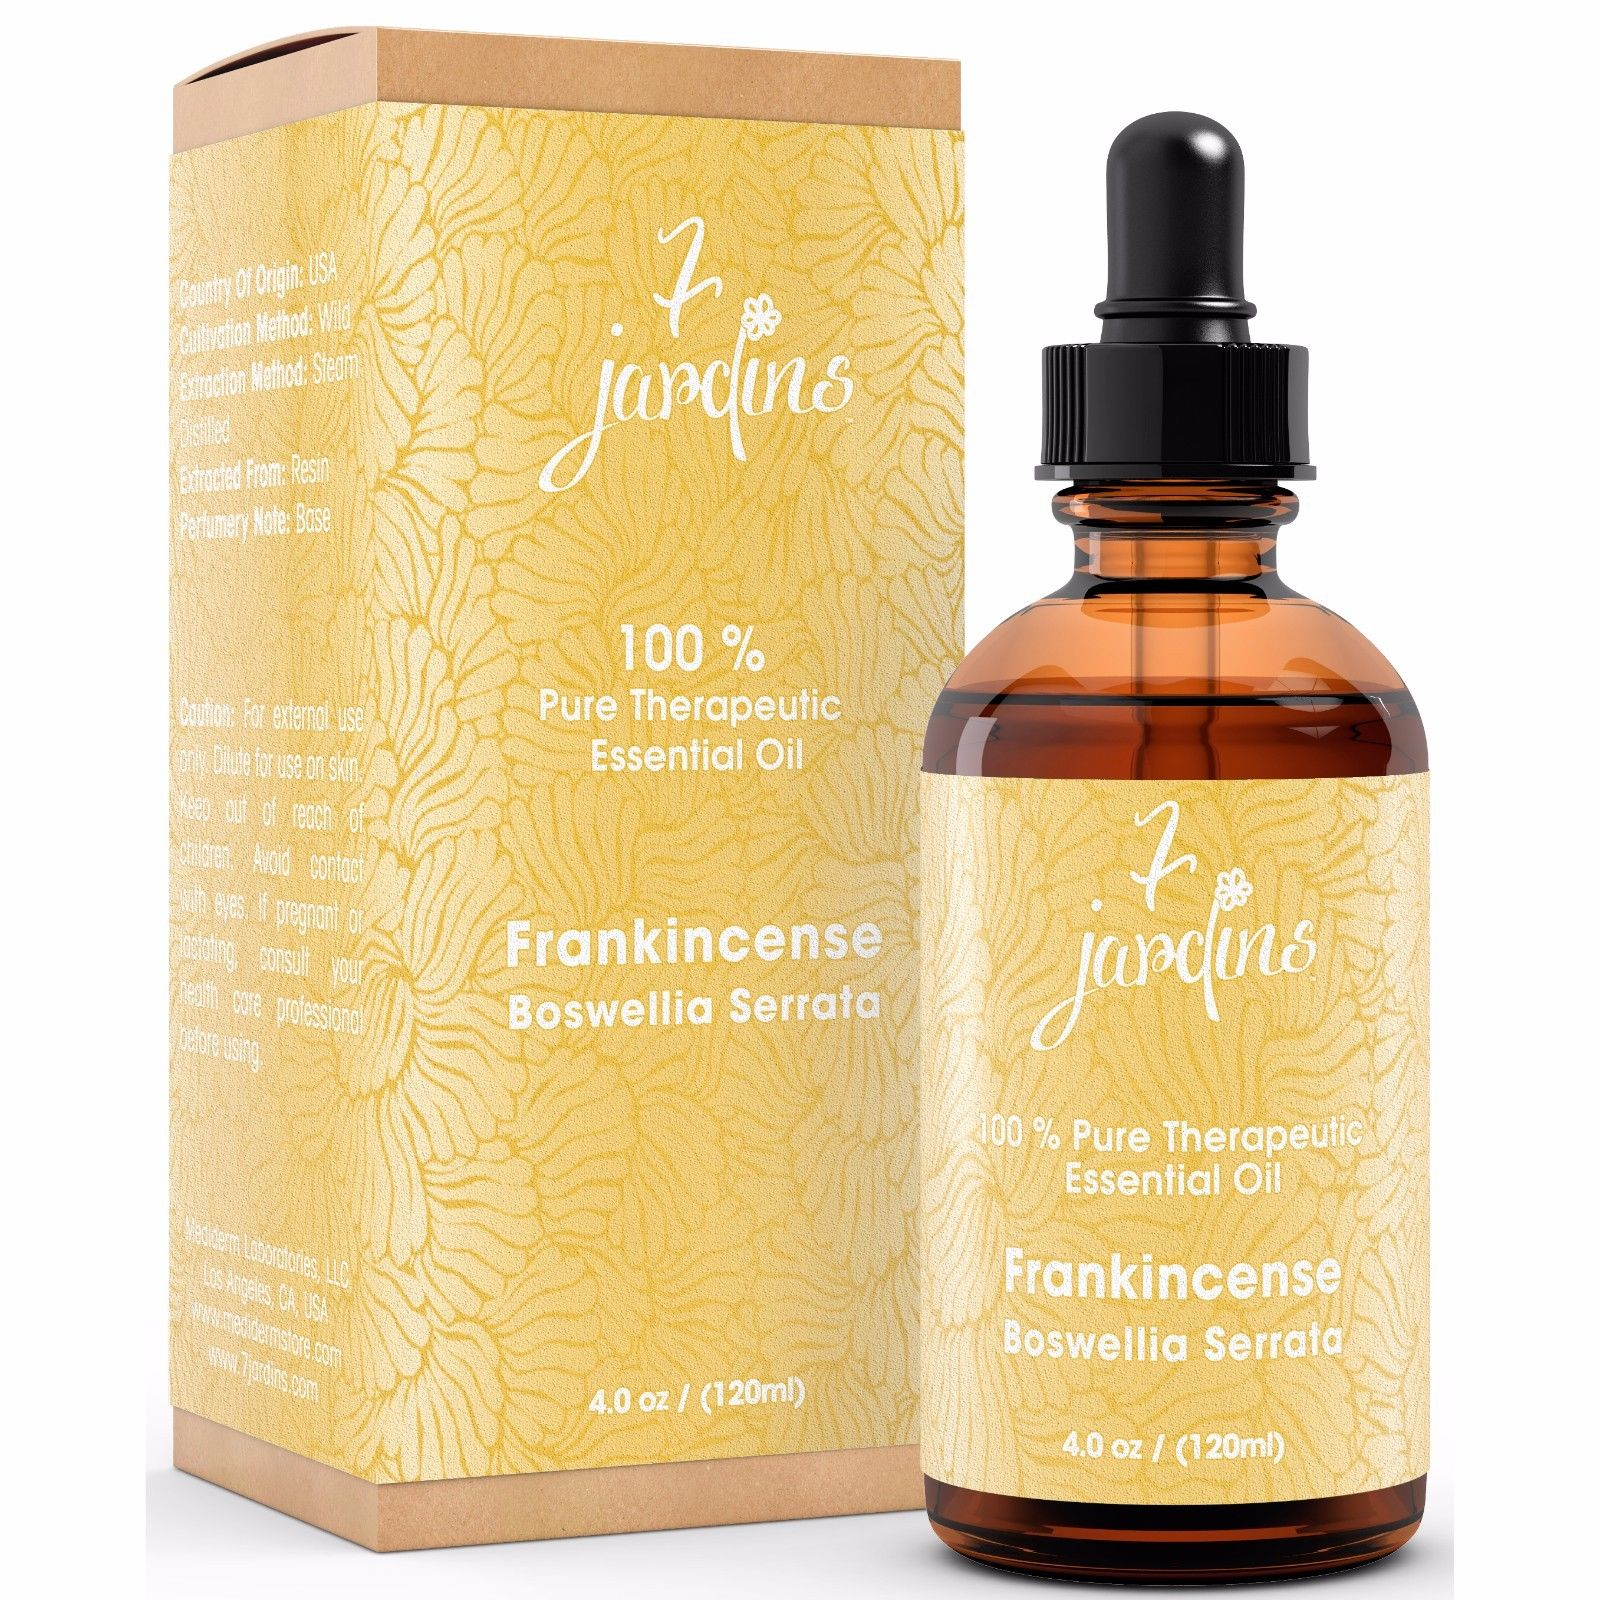 Premium Frankincense 100% Natural Therapeutic Essential Oil by 7 Jardins - 120ml